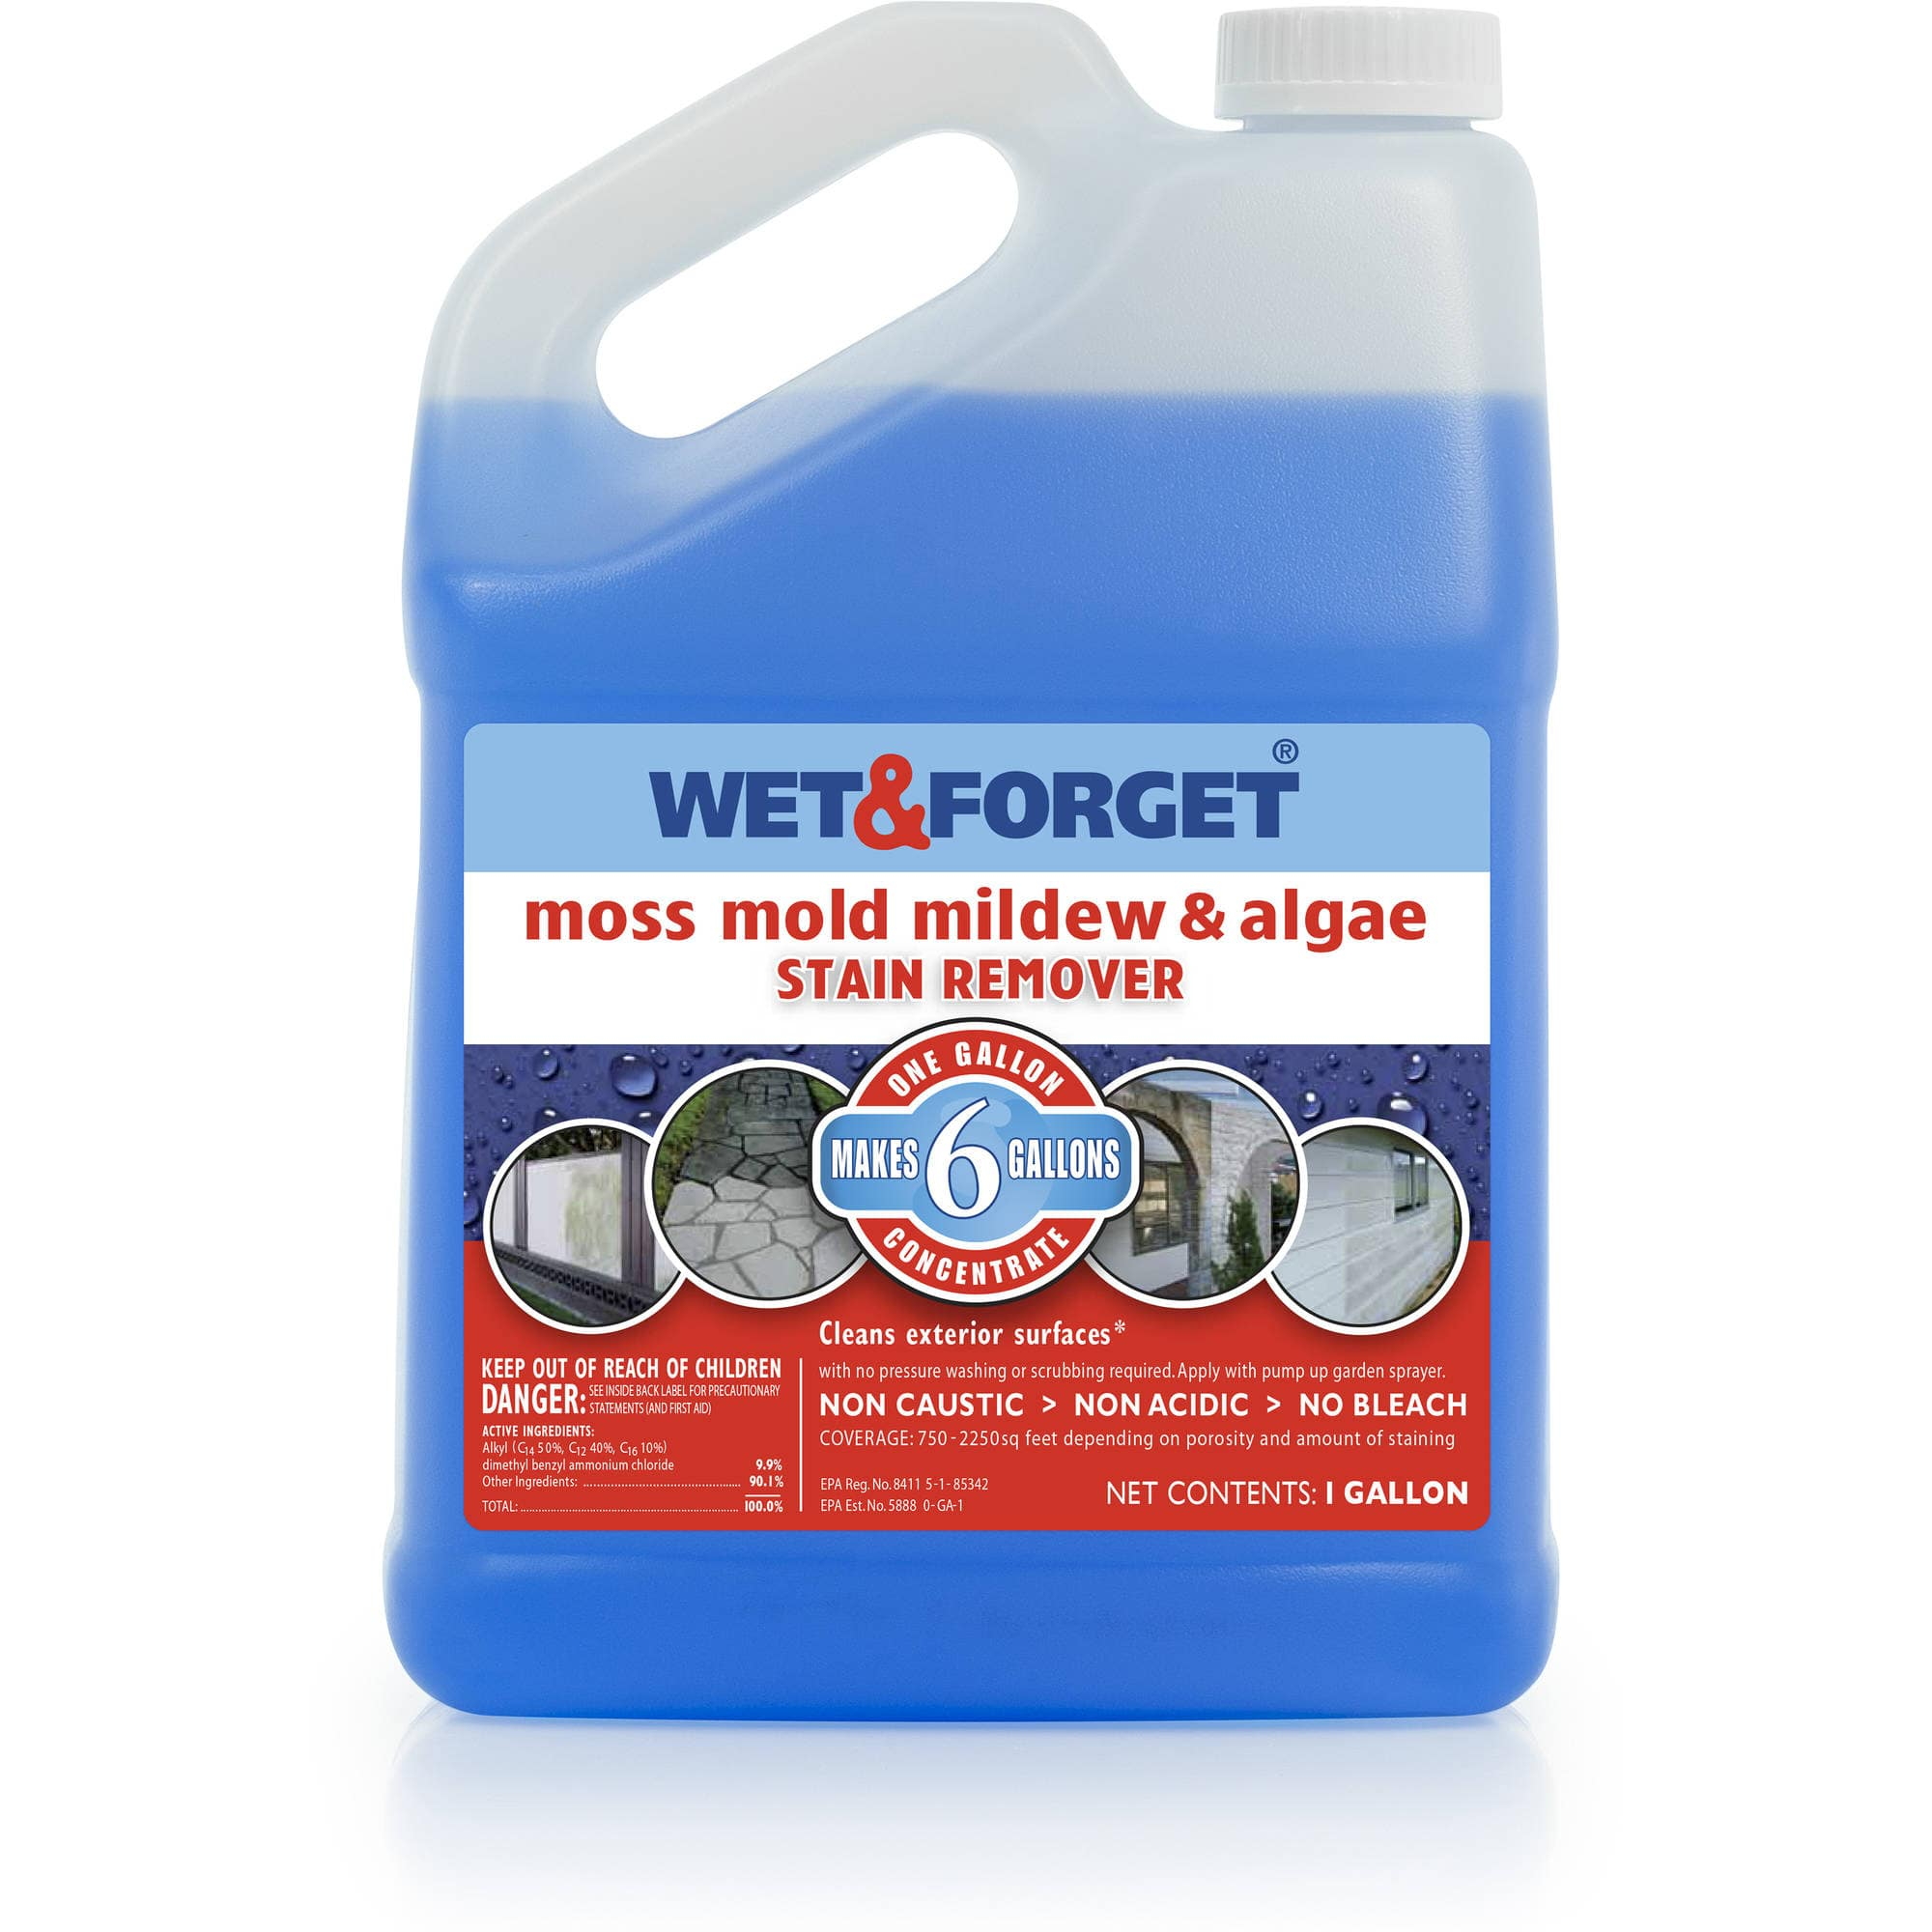 Wet And Forget 1 Gallon Concentrate - Walmart.com - Save $7.45 $27.54